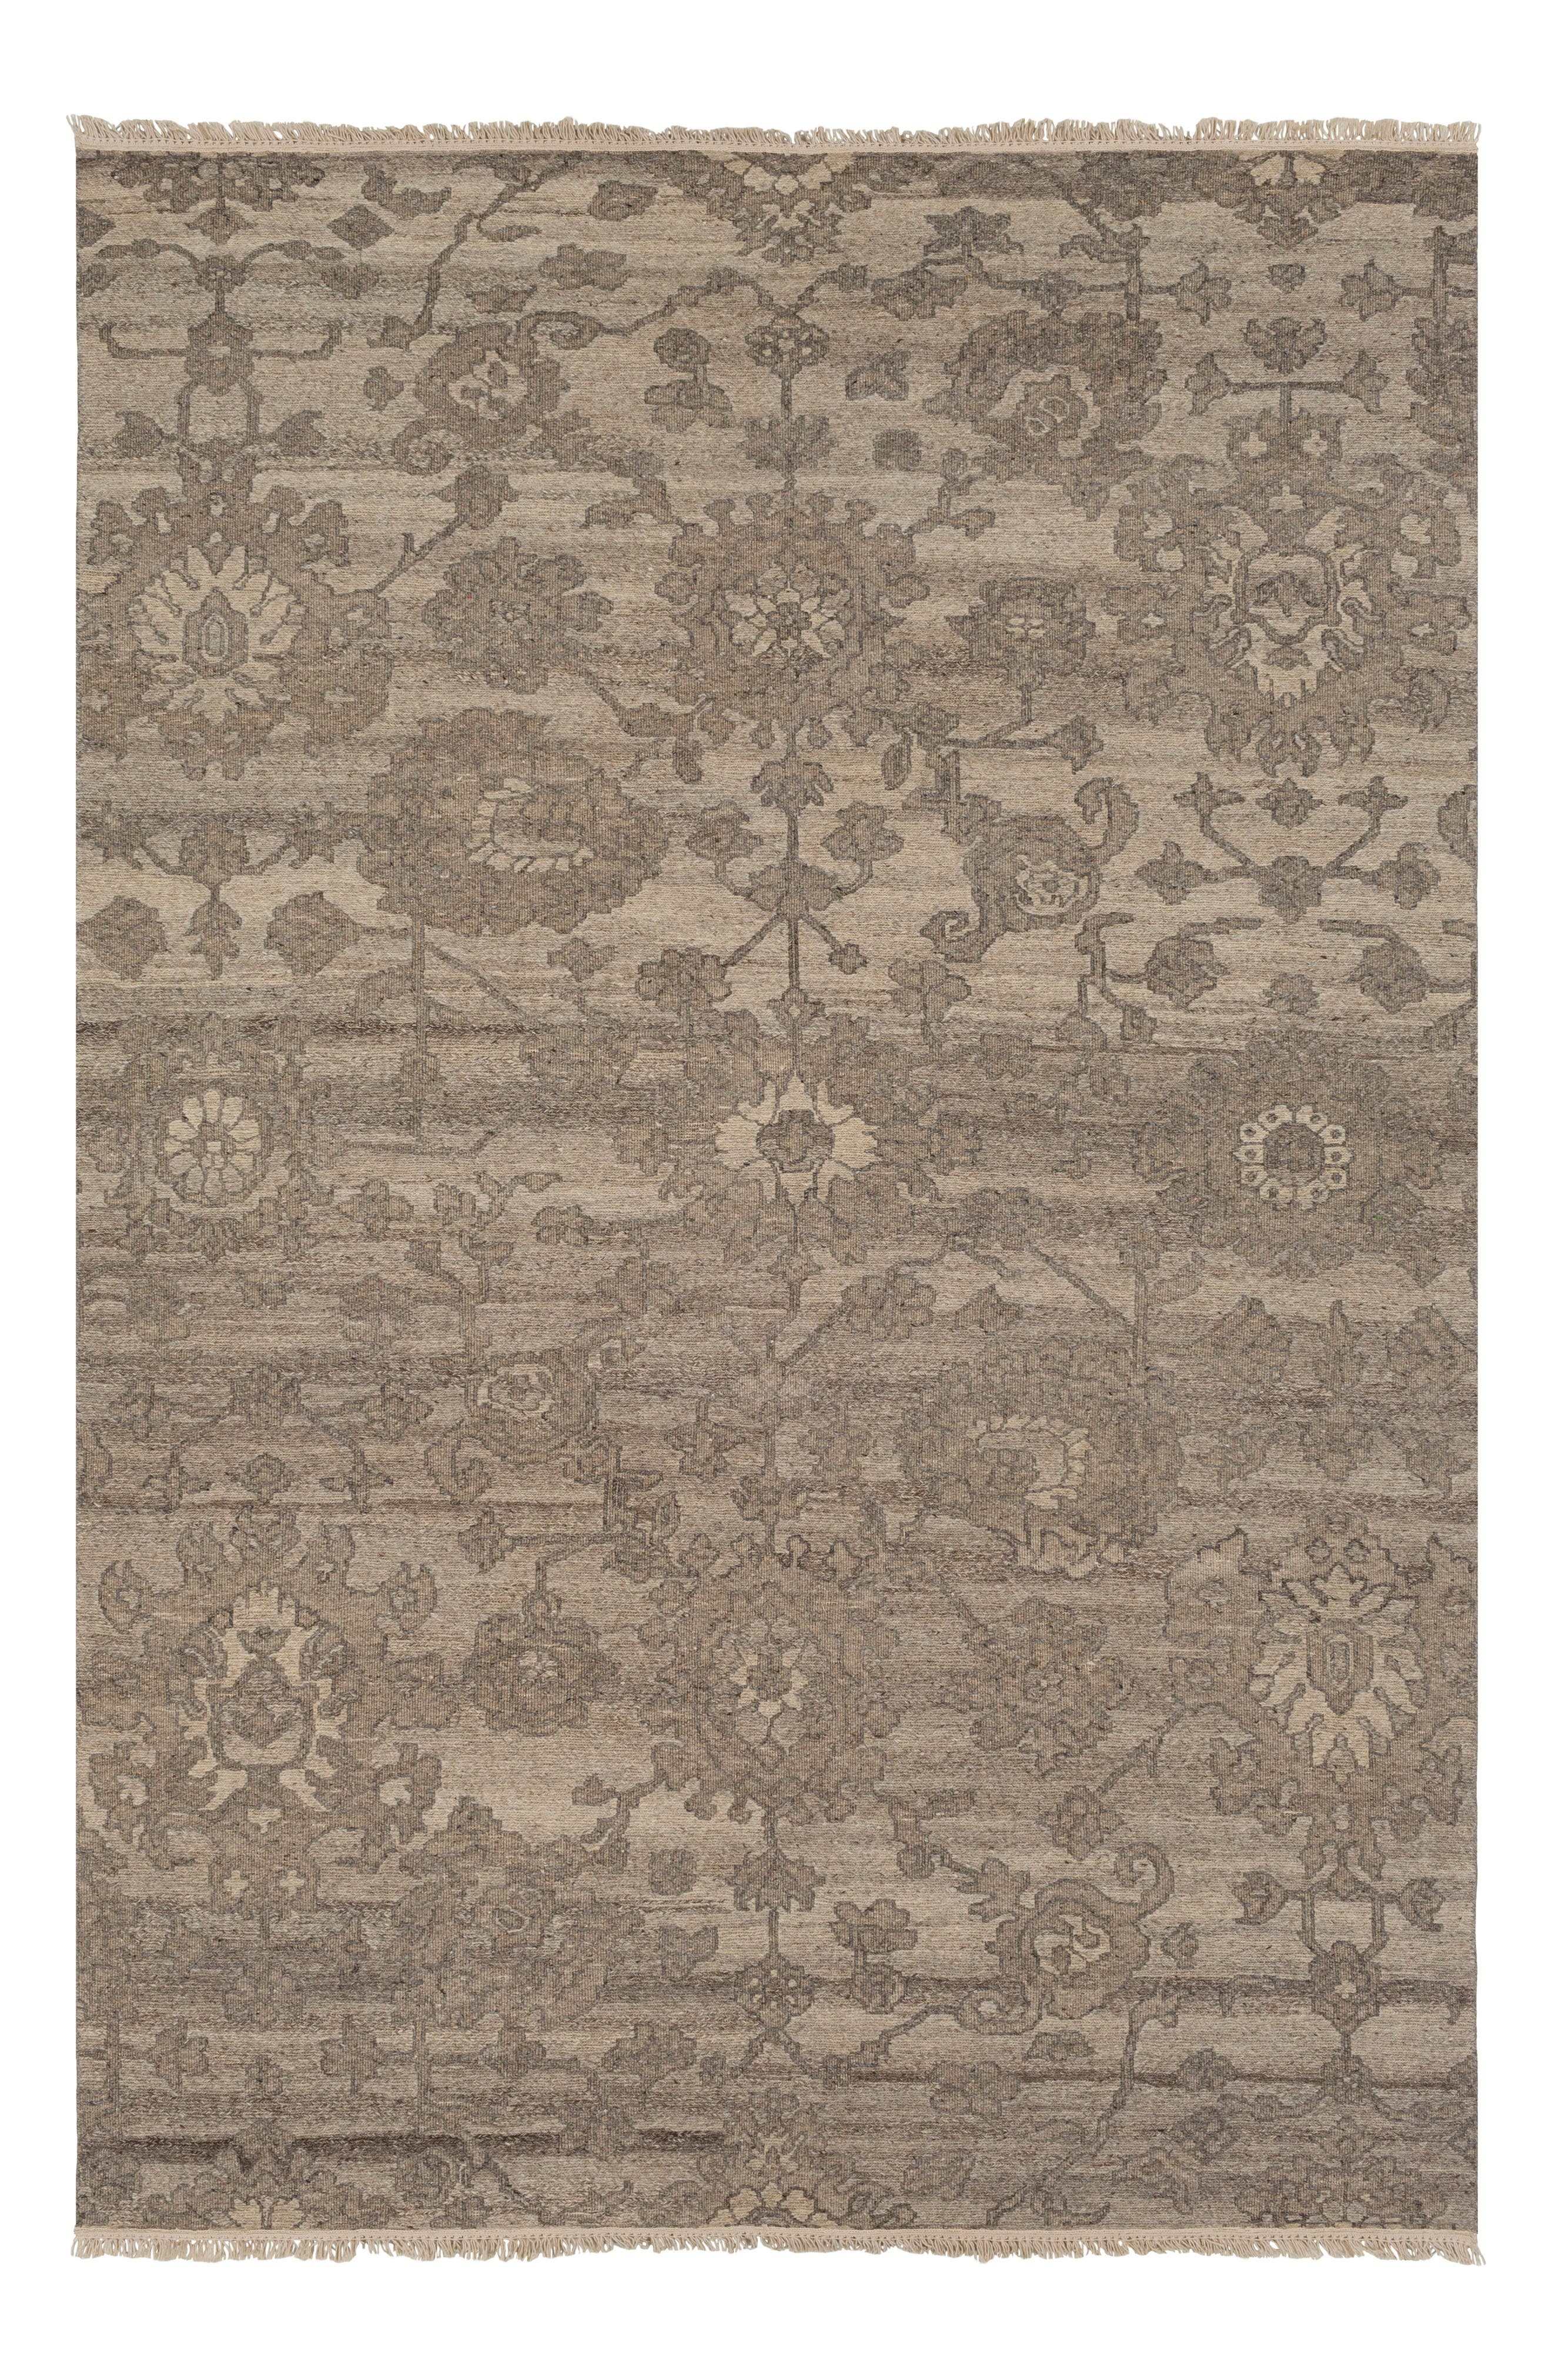 Ethereal Area Rug,                         Main,                         color, Neutral